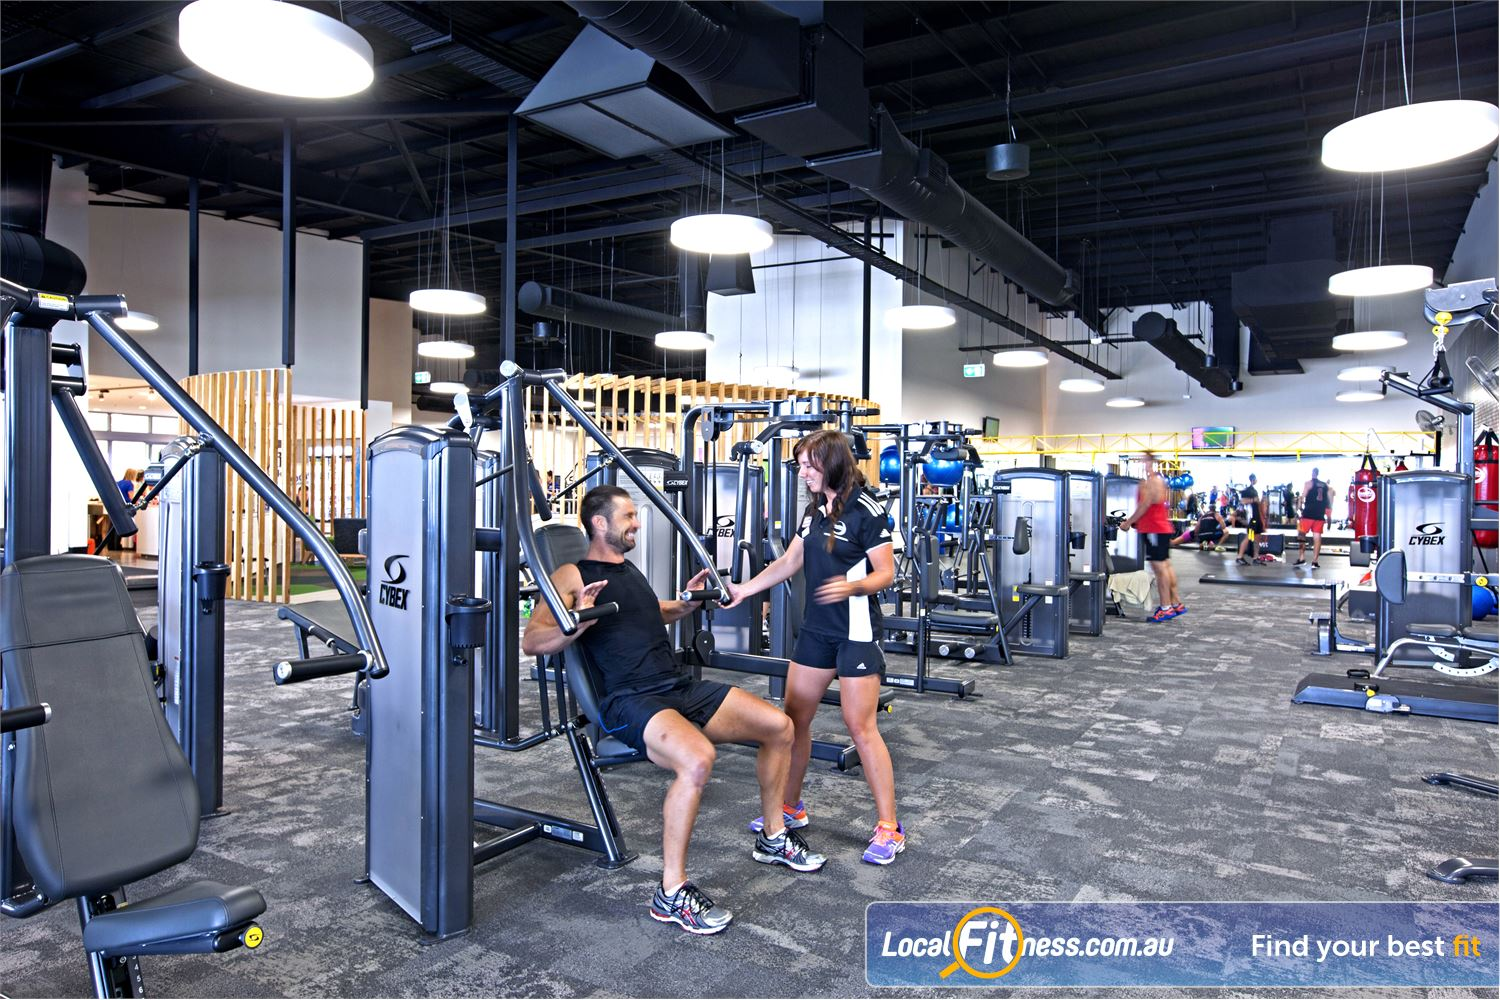 Goodlife Health Clubs Maroochydore Our team of Maroochydore gym instructors can help monitor your strength training.